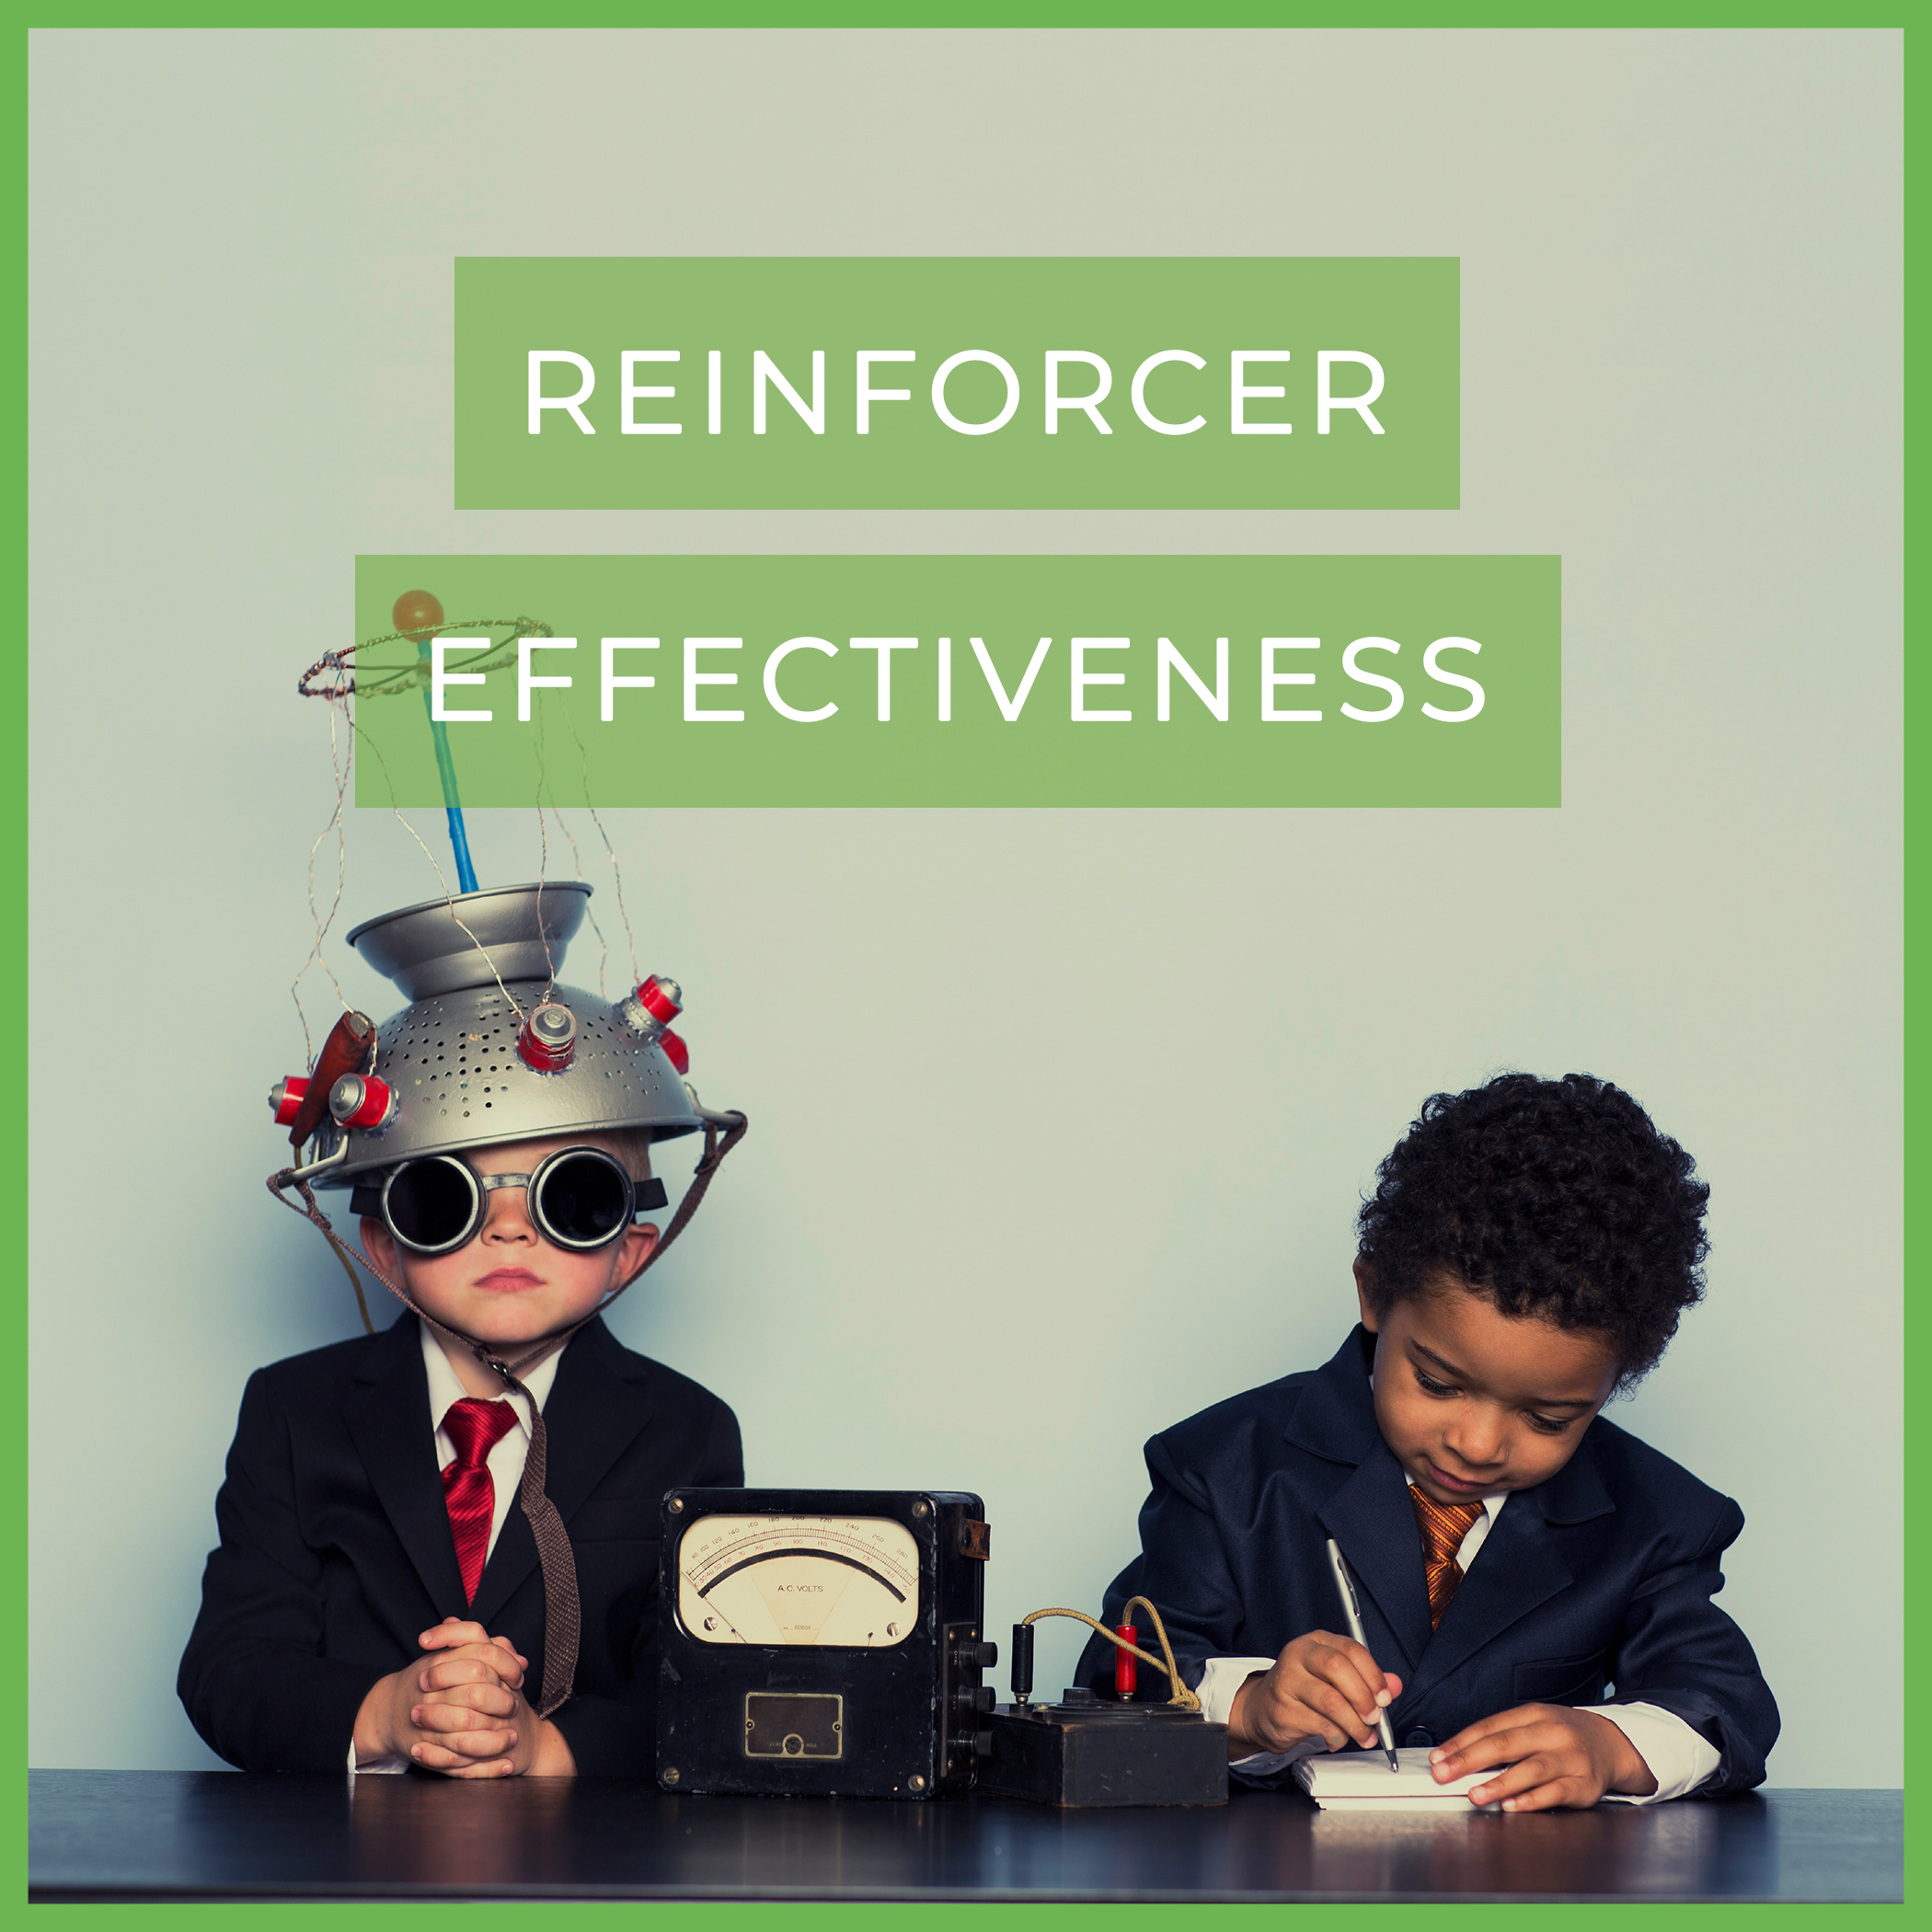 reinforcer-effectiveness-aba-therapy-autism-cultivate.png